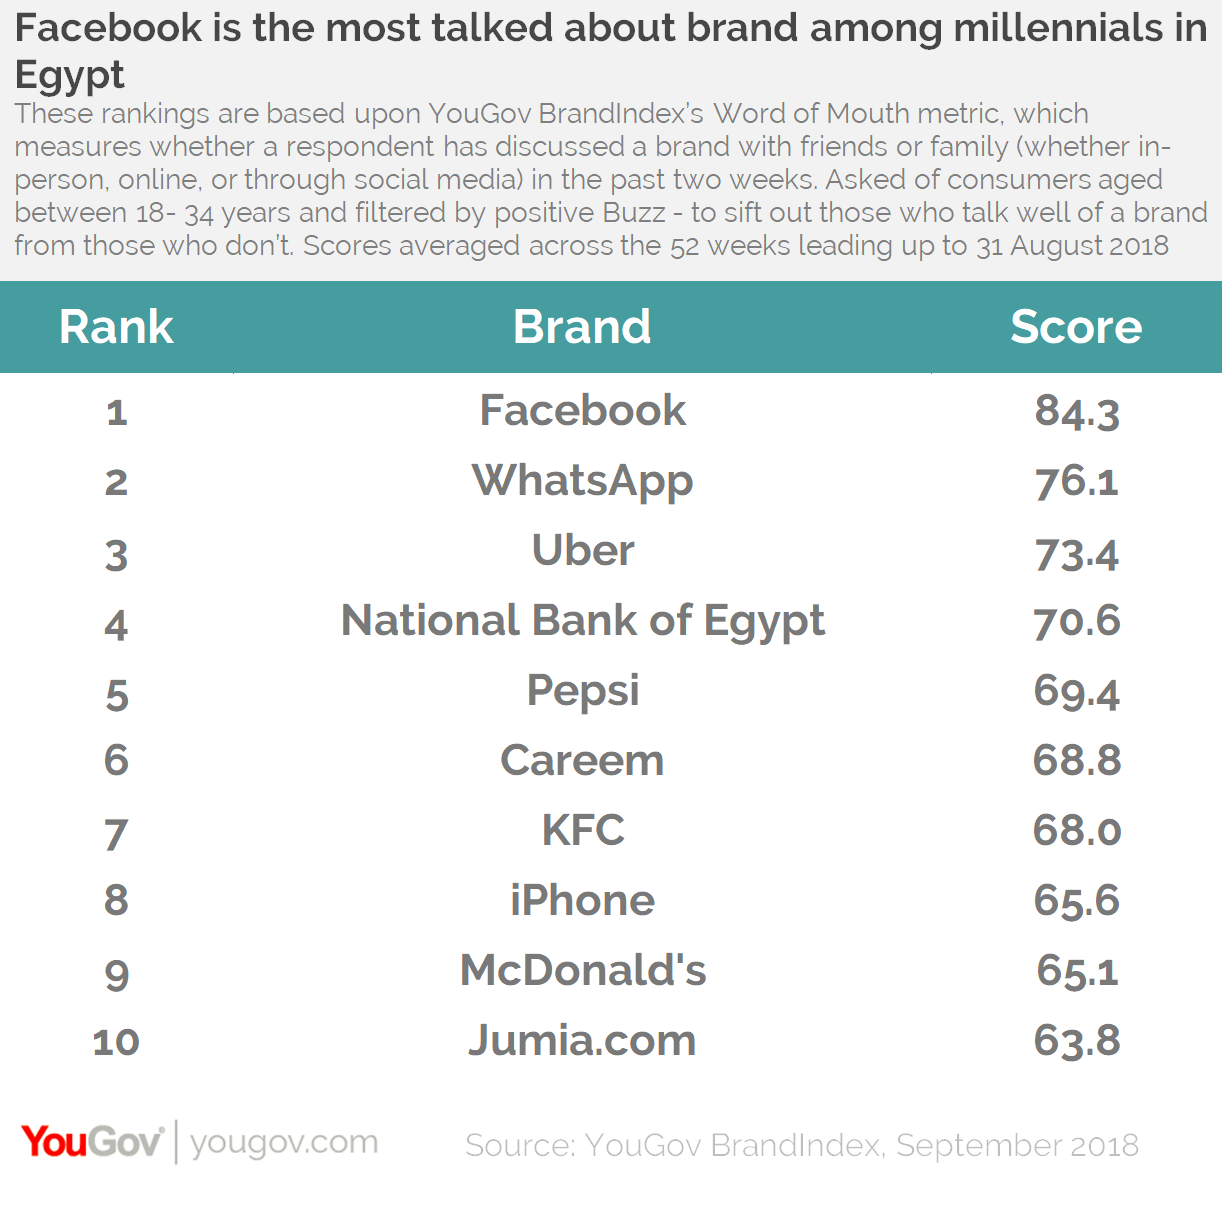 YouGov Millennial Brand Rankings: Top 10 EGYPT